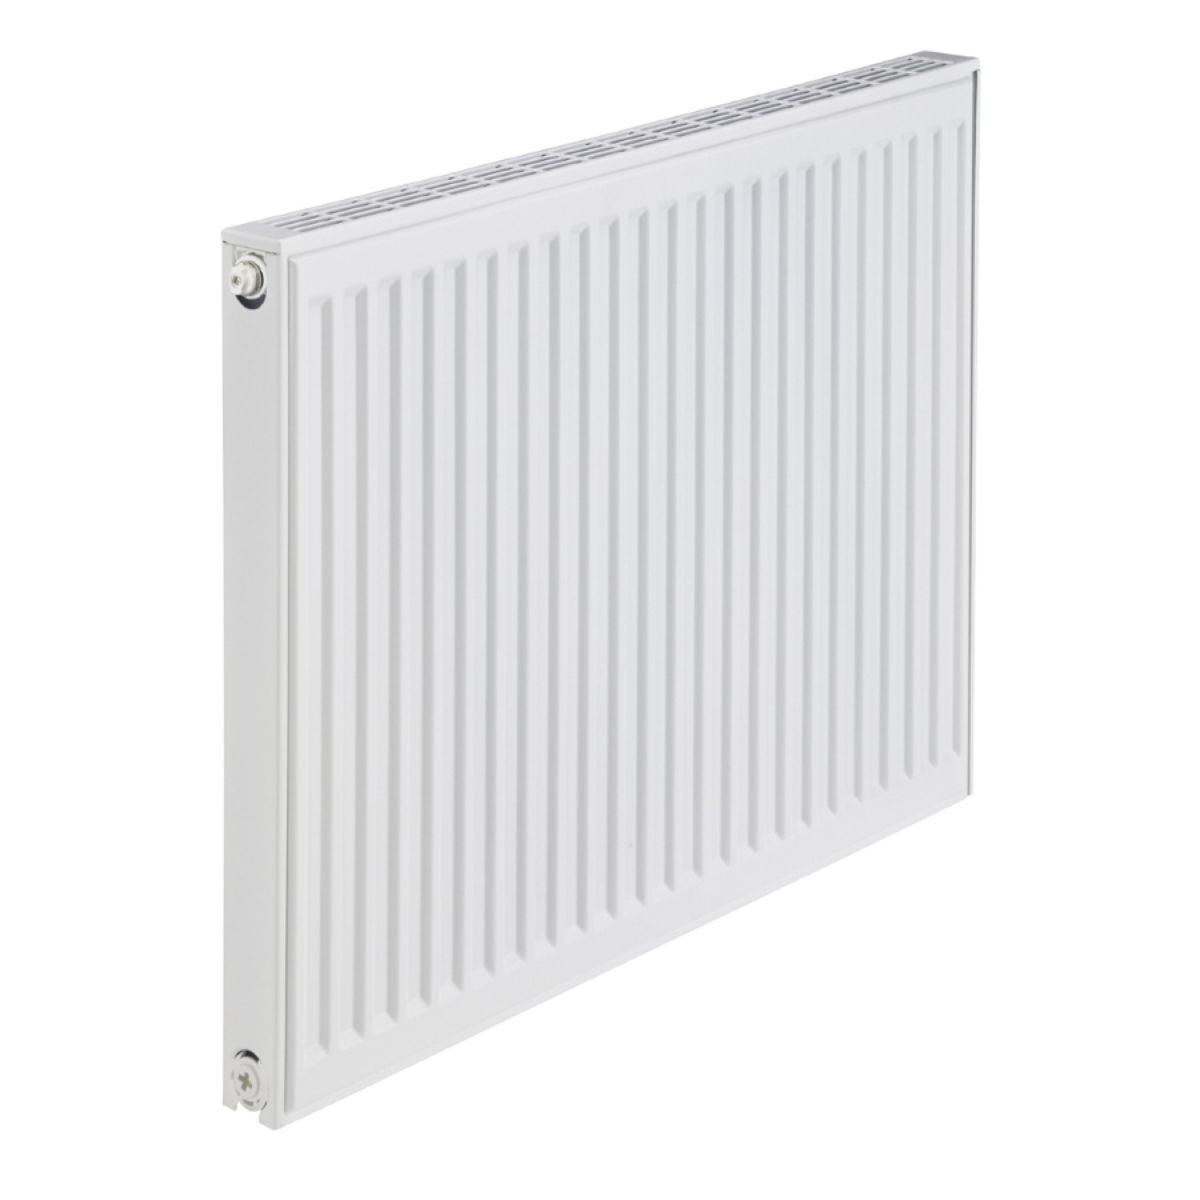 Henrad 300x1500 Type11 Radiator